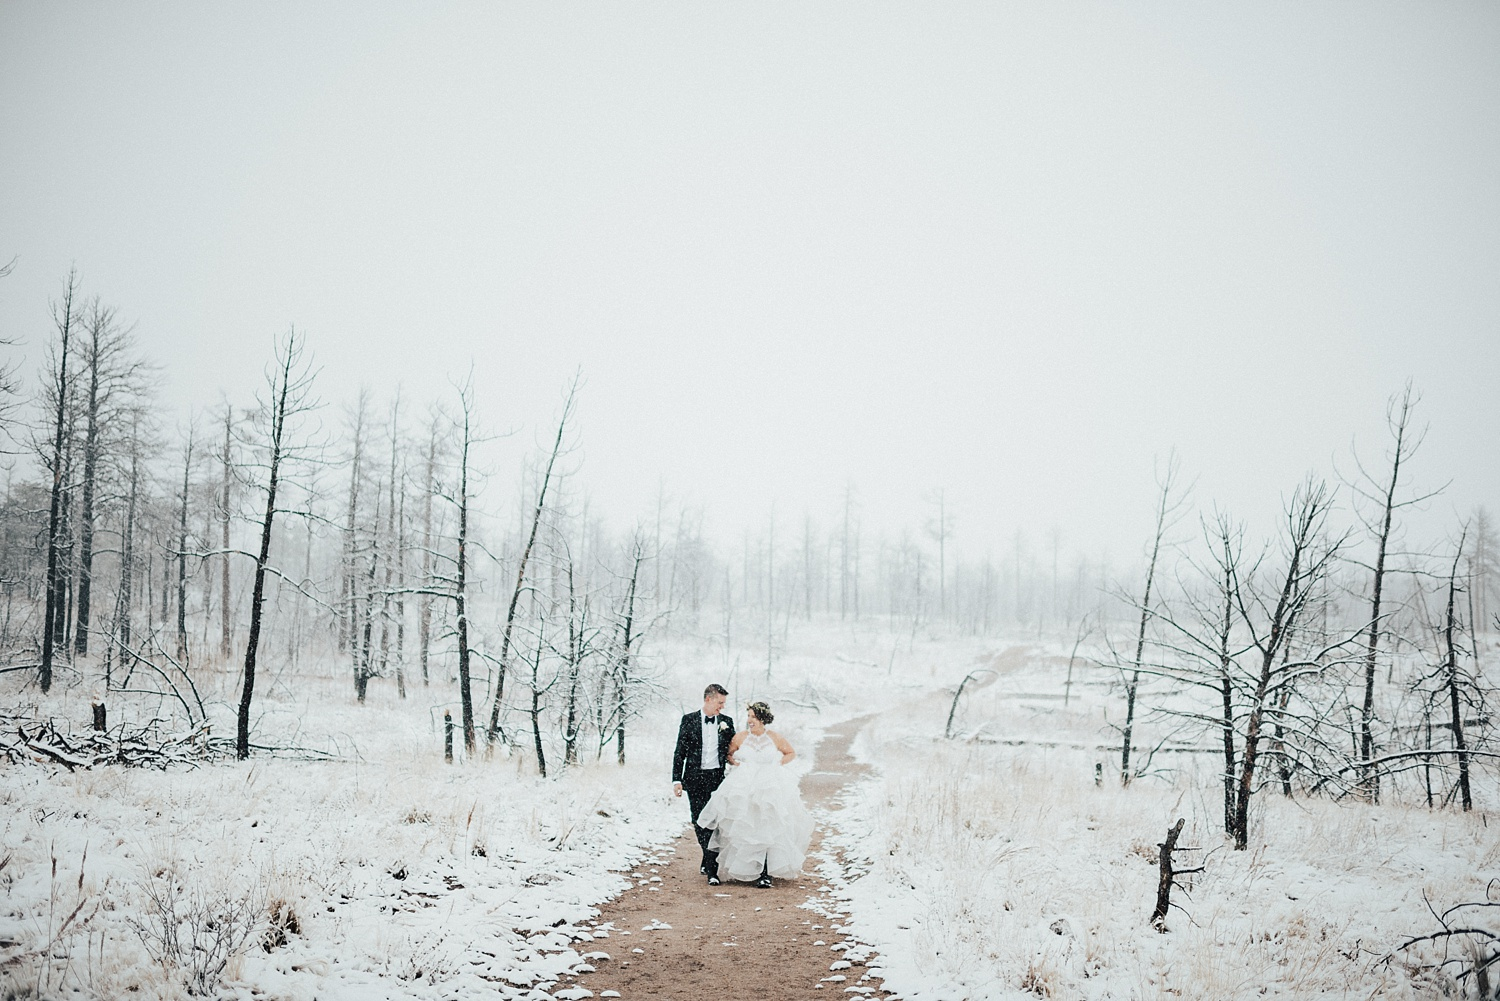 Nate_shepard_photography_engagement_wedding_photographer_denver_colorado_0226.jpg